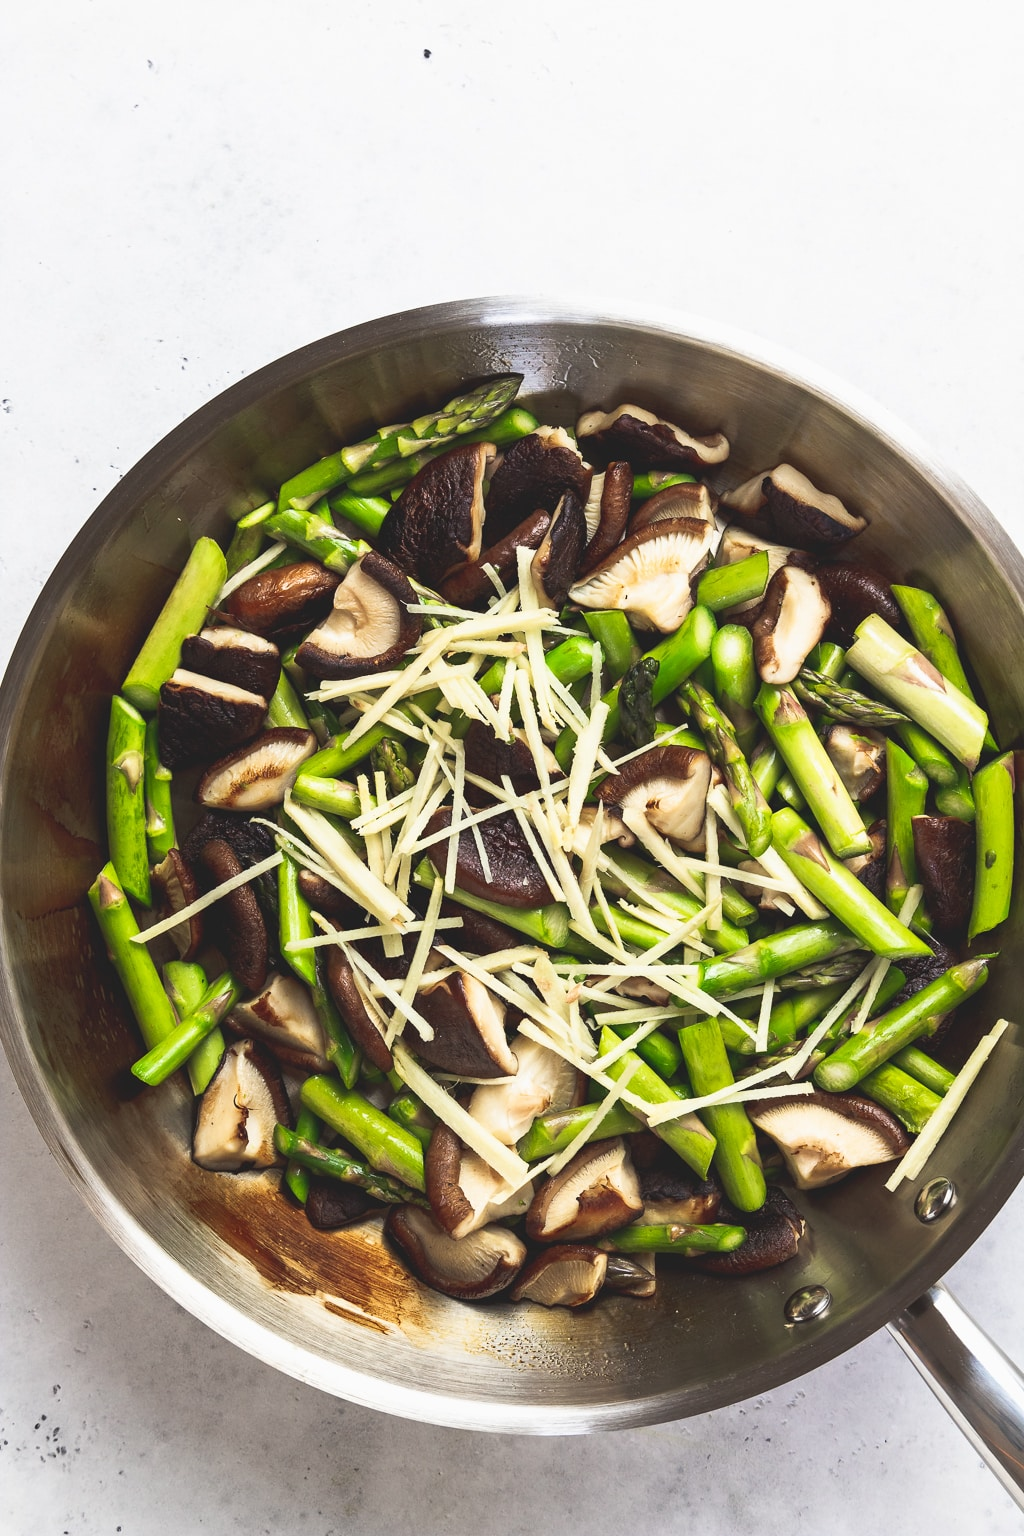 skillet with asparagus mushrooms and ginger